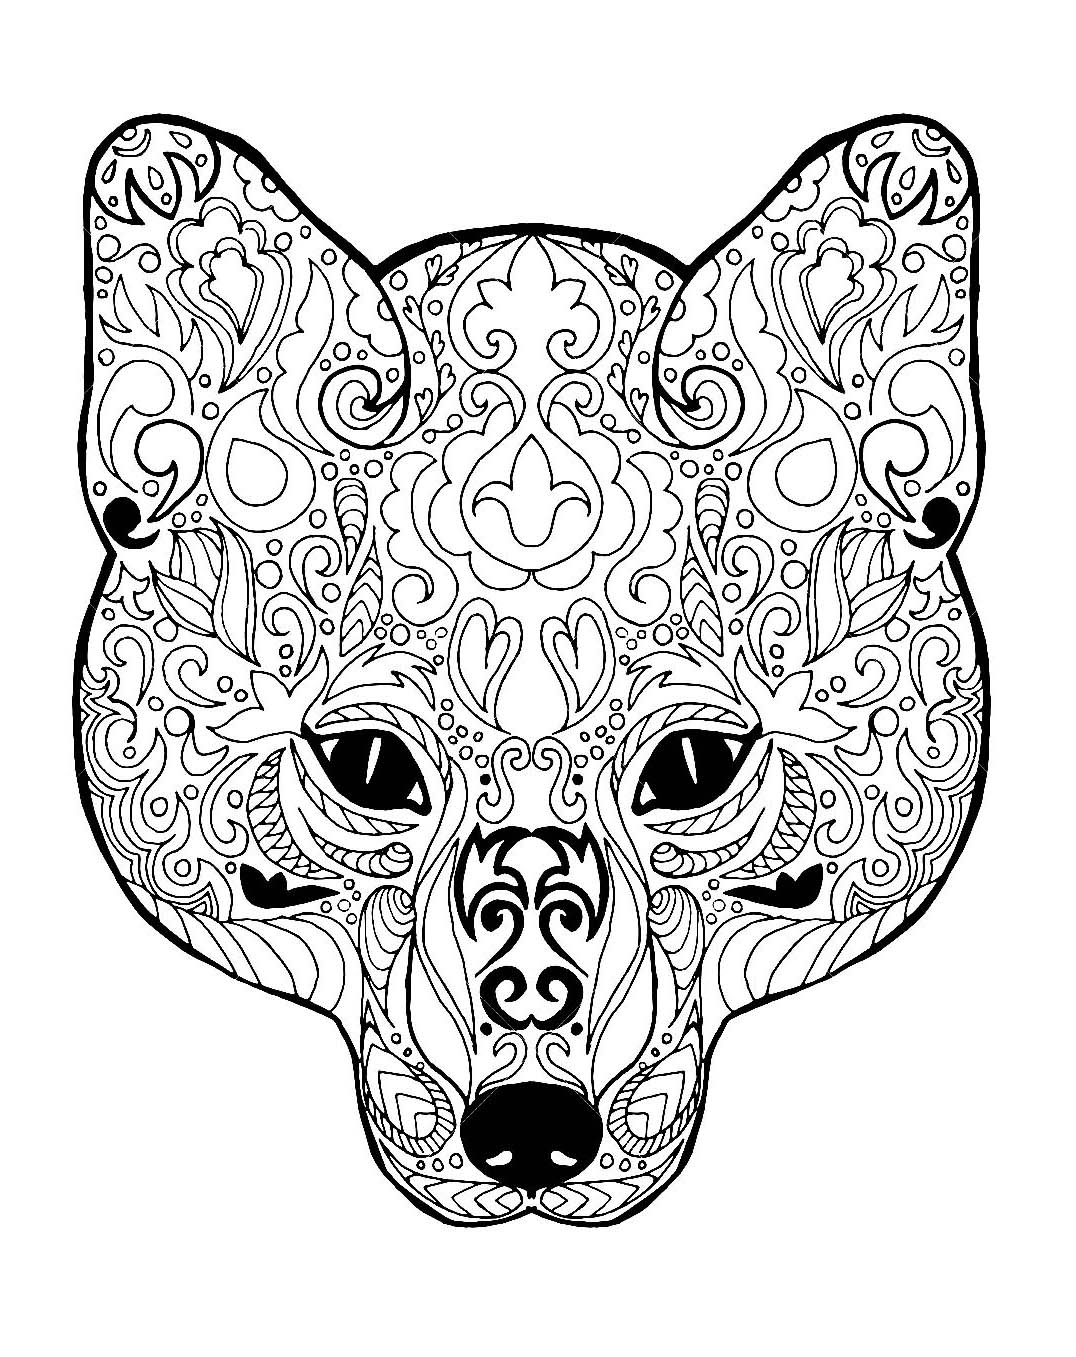 fox coloring games arctic fox coloring pages coloring pages to download and fox games coloring